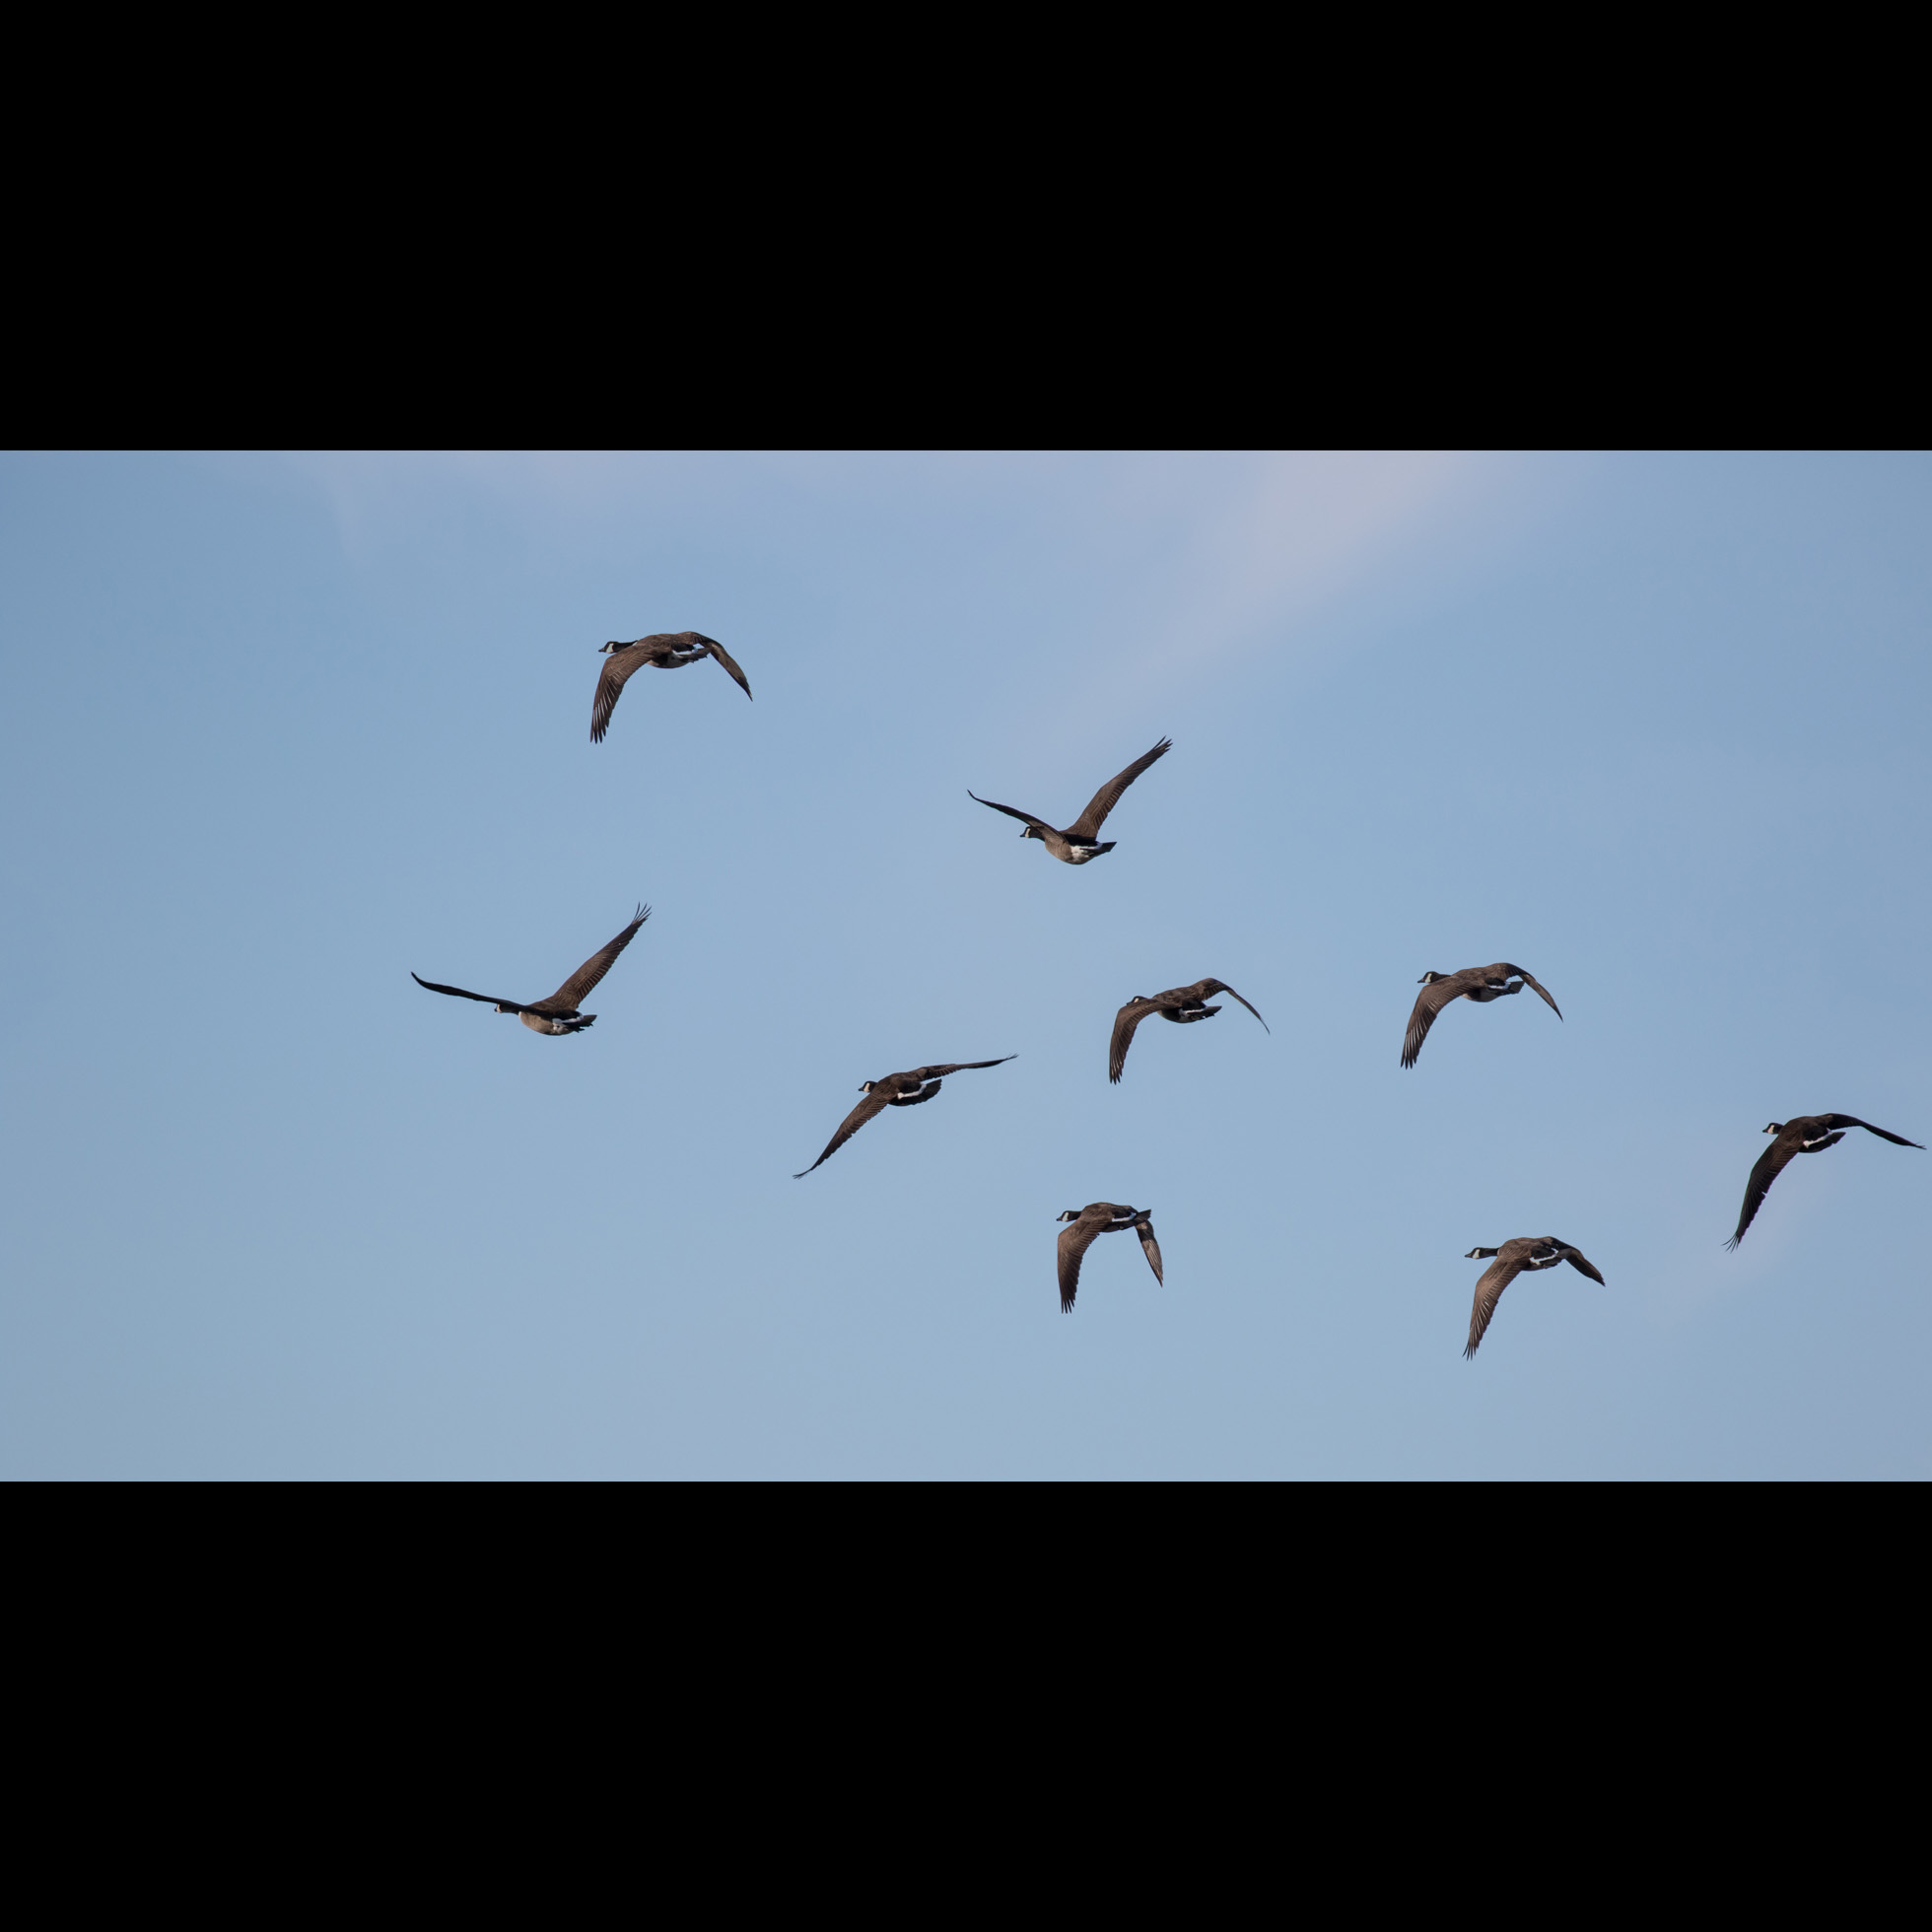 1.3 WILD GEESE